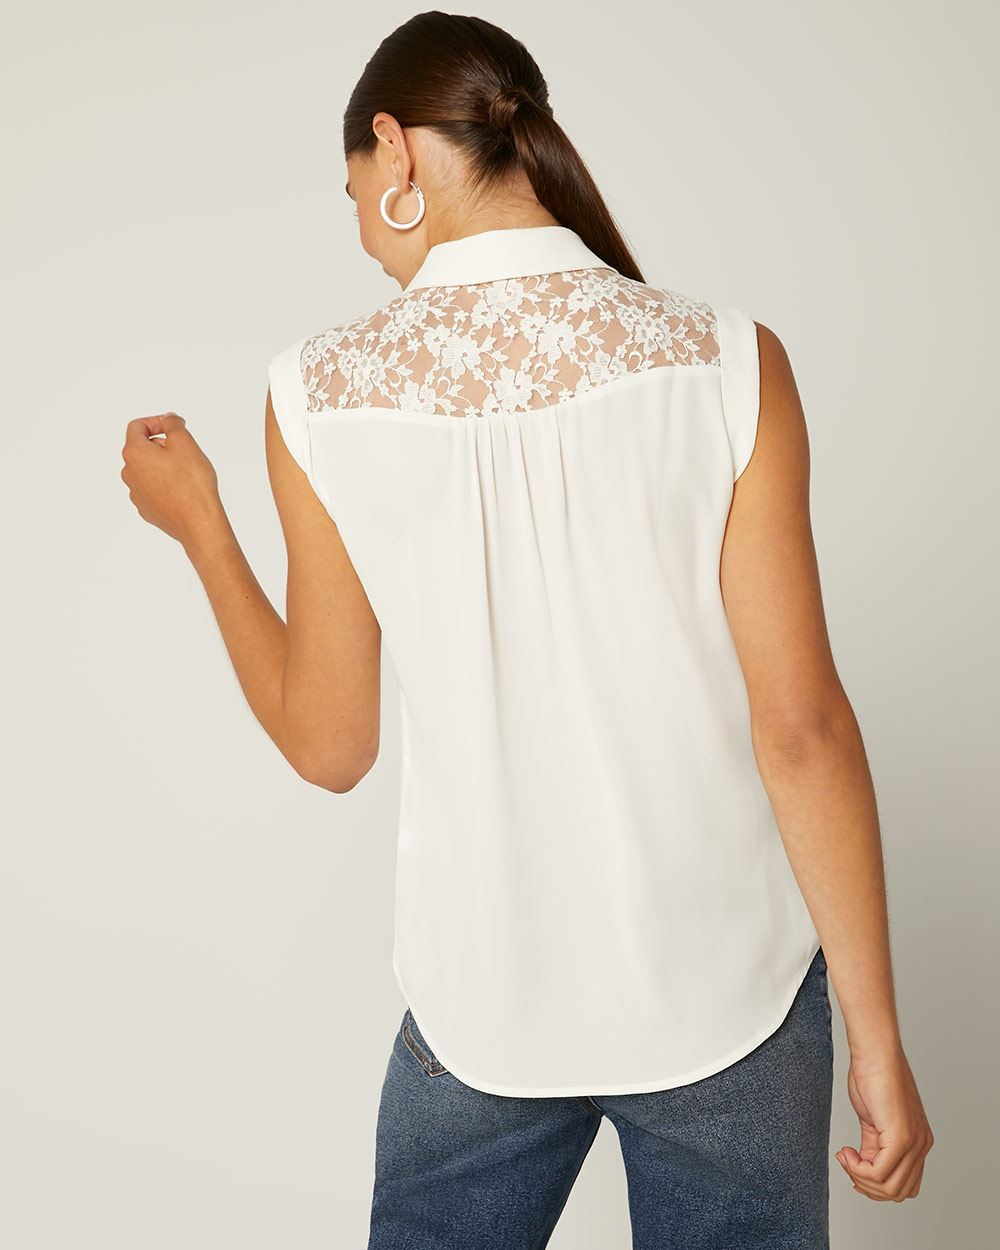 Lace-trimmed Blouse with Neck Tie